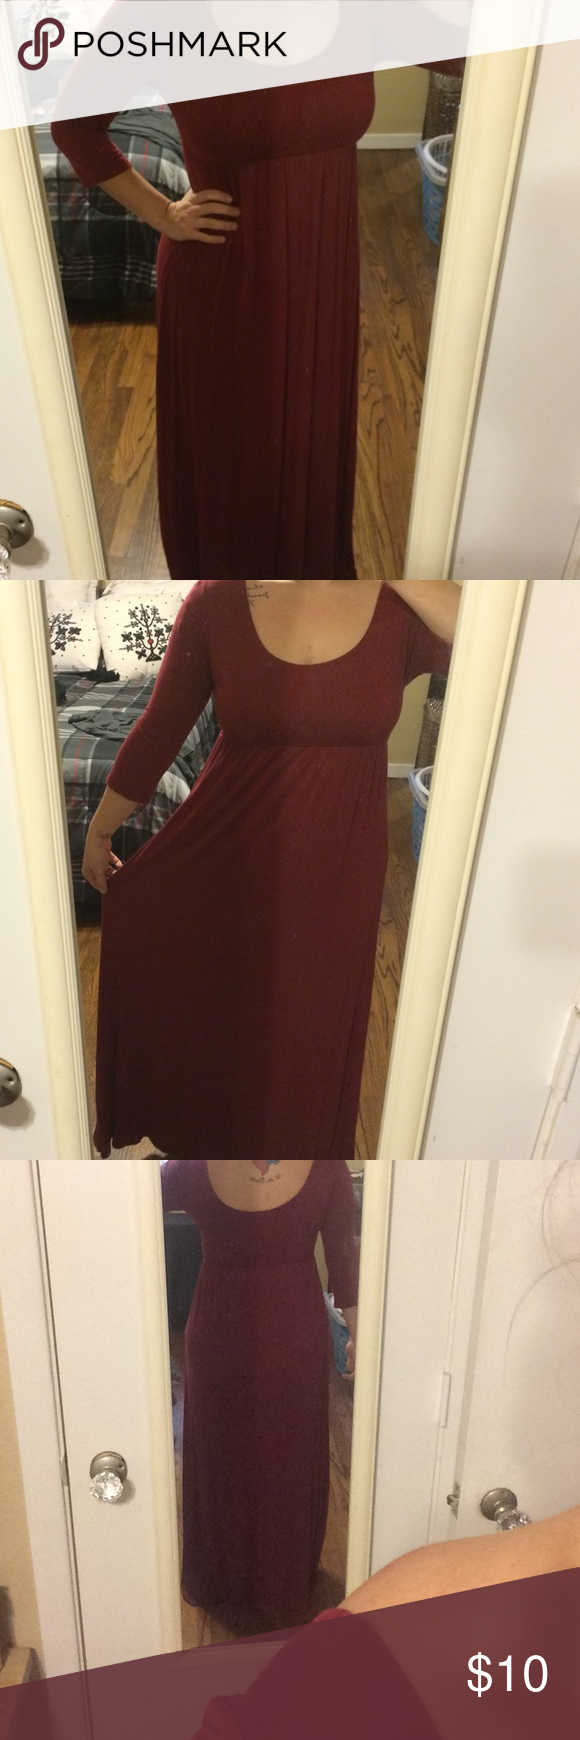 Red sleeve maxi dress by nymphe red maxi dress bra friendly